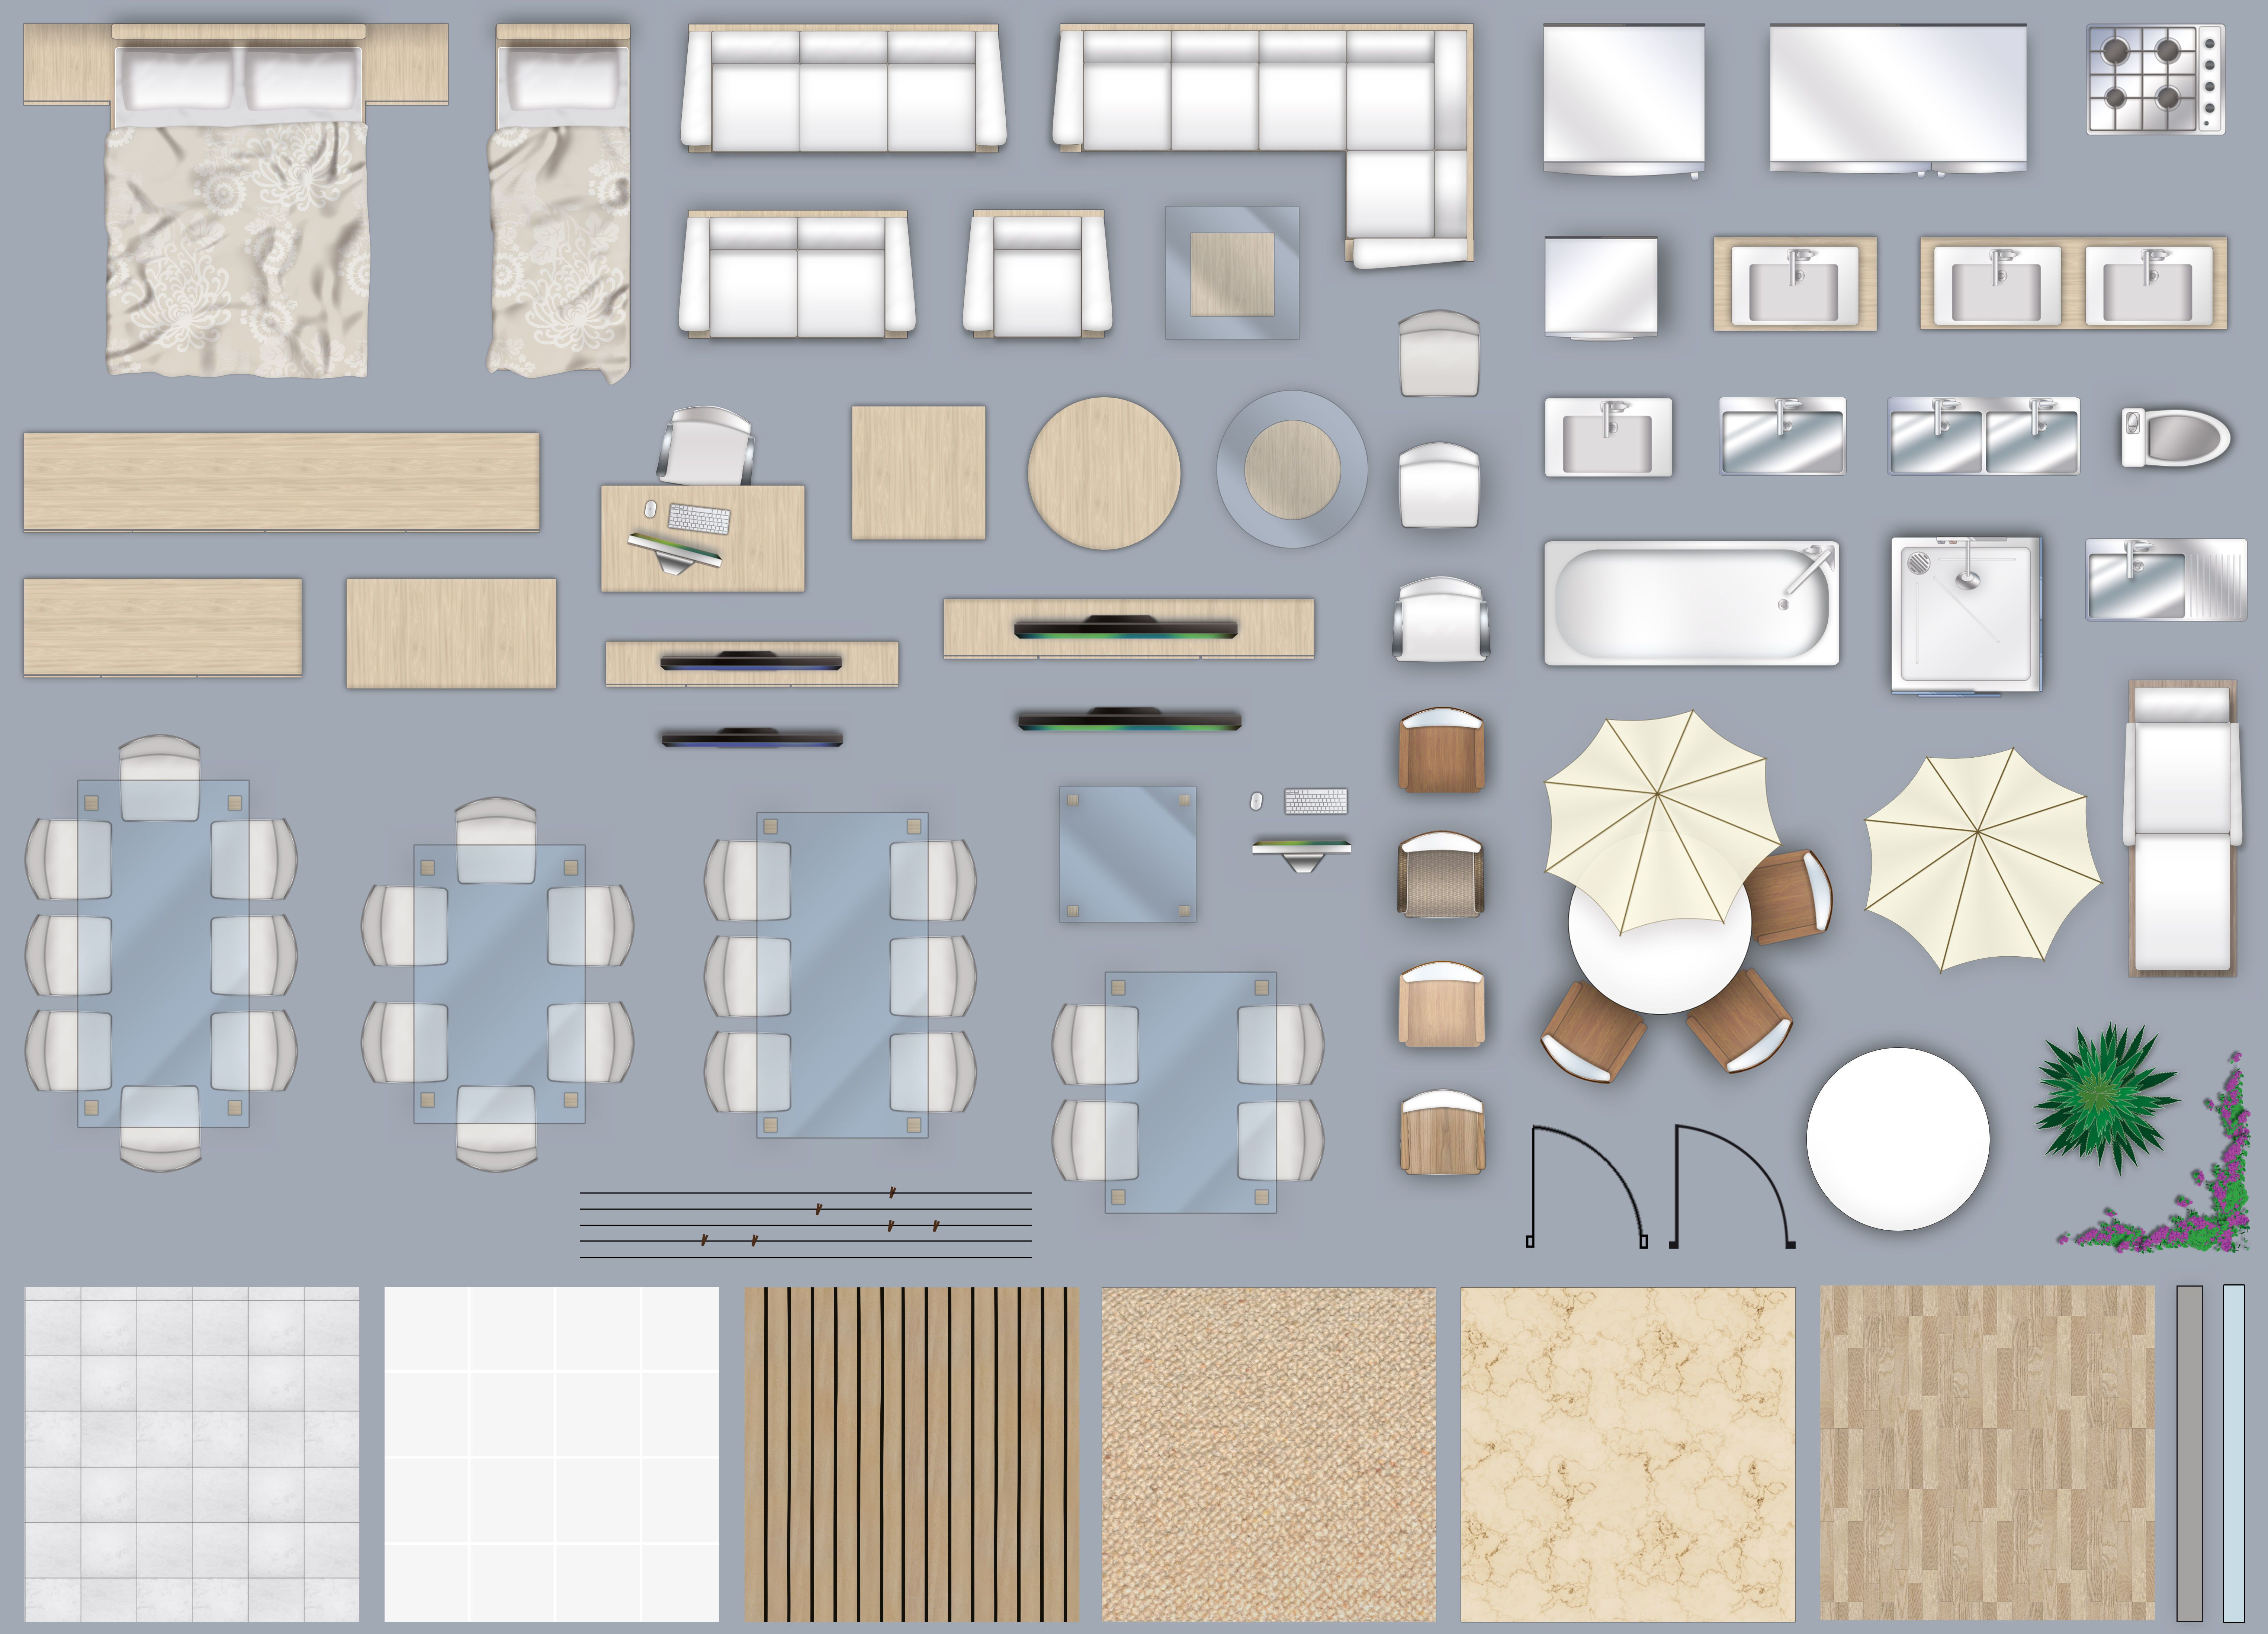 2d furniture floorplan top down view style 4 PSD | 3D model | 2d and 3d